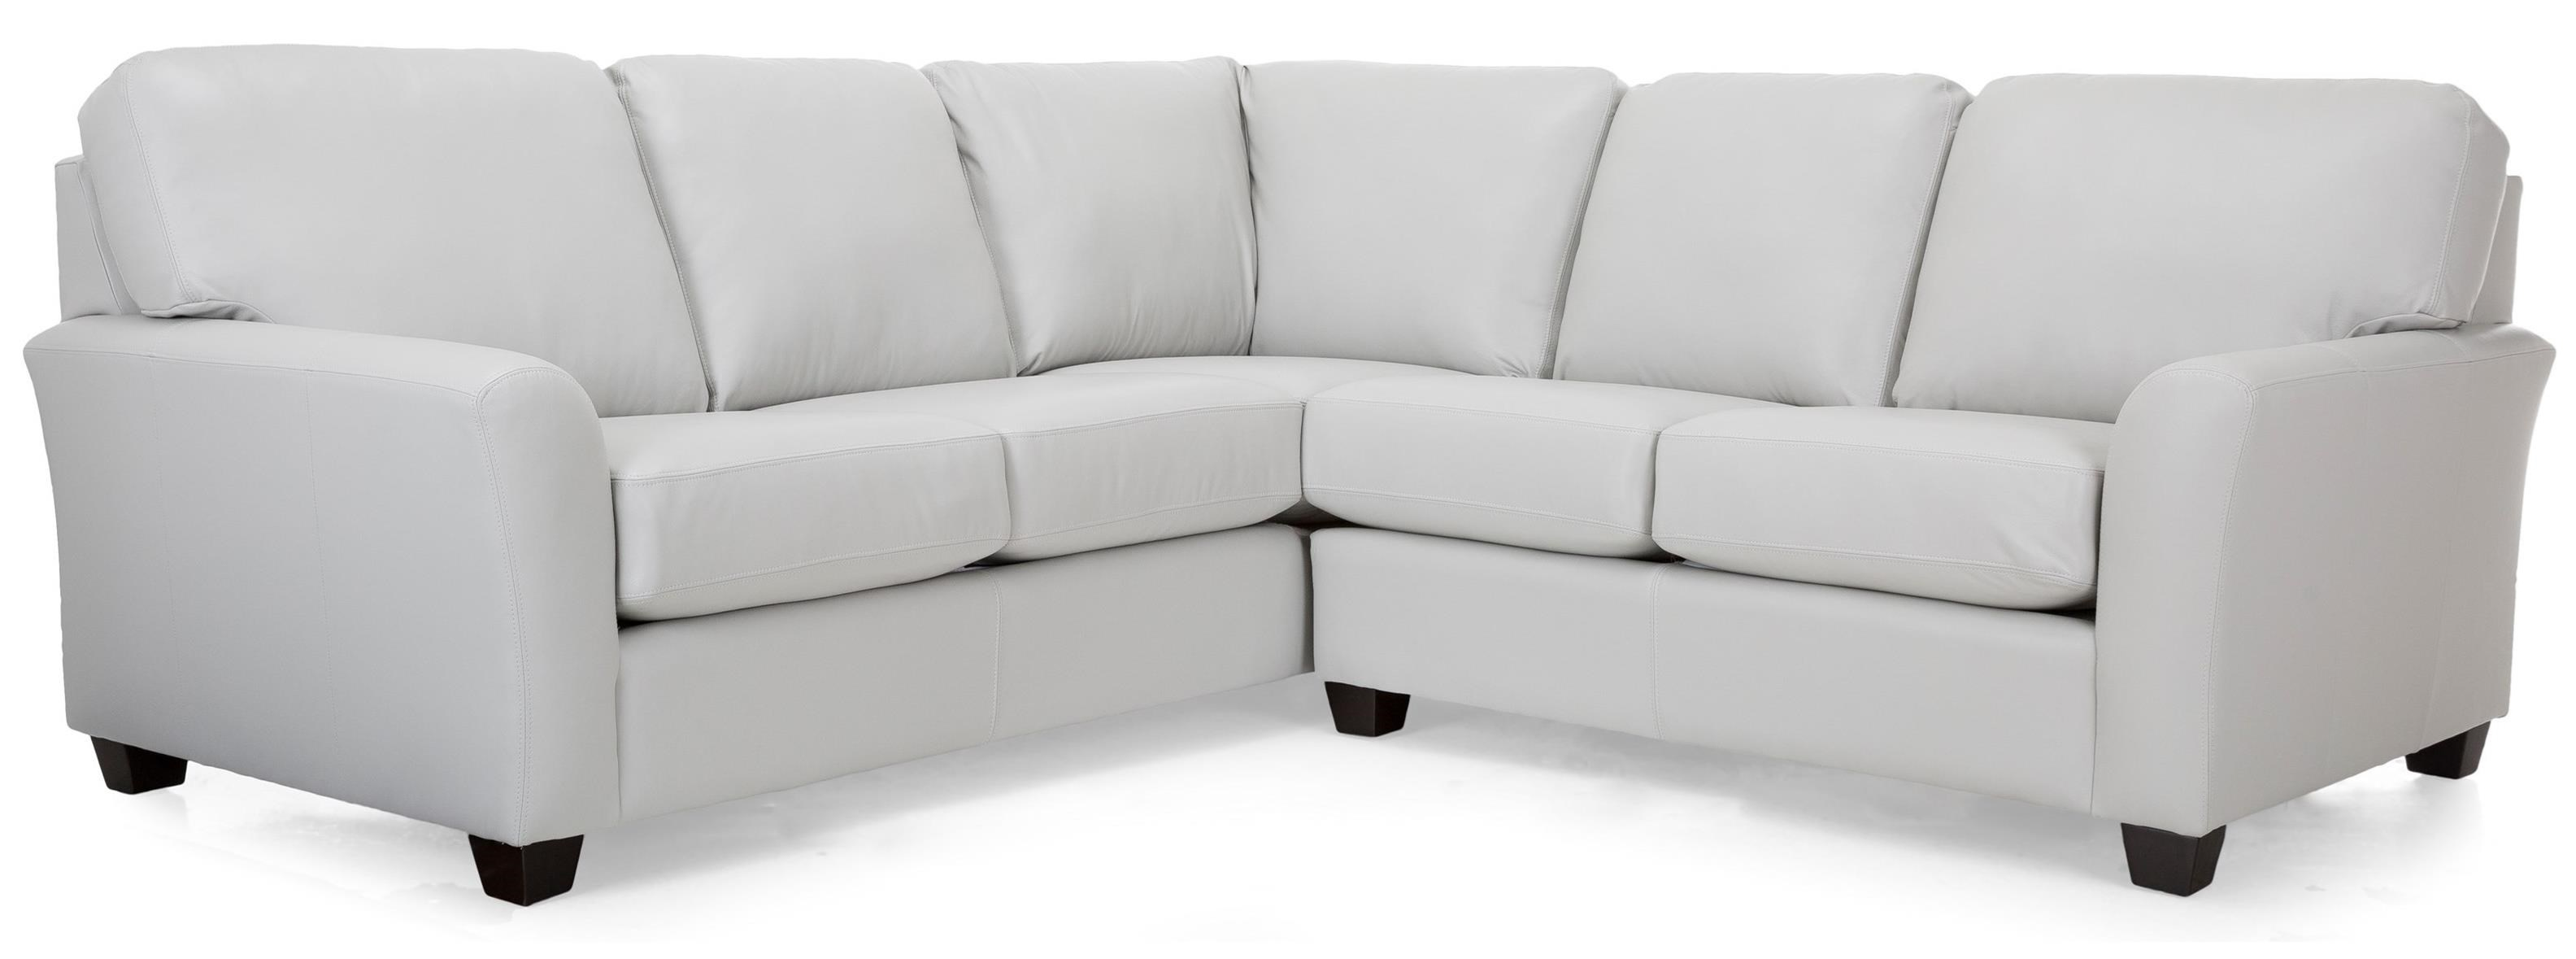 Alessandra Connections Sectional Sofa by Decor-Rest at Johnny Janosik